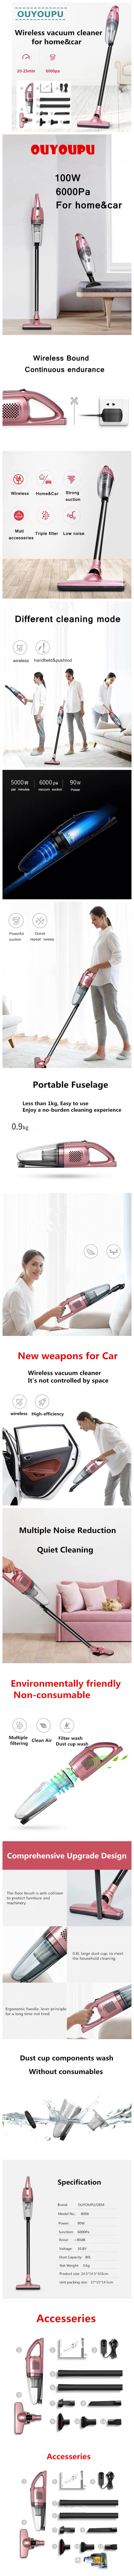 Cyclone upright hand held Vacuum Cleaner cleaning robot multi nozzle 100W cheap price factory